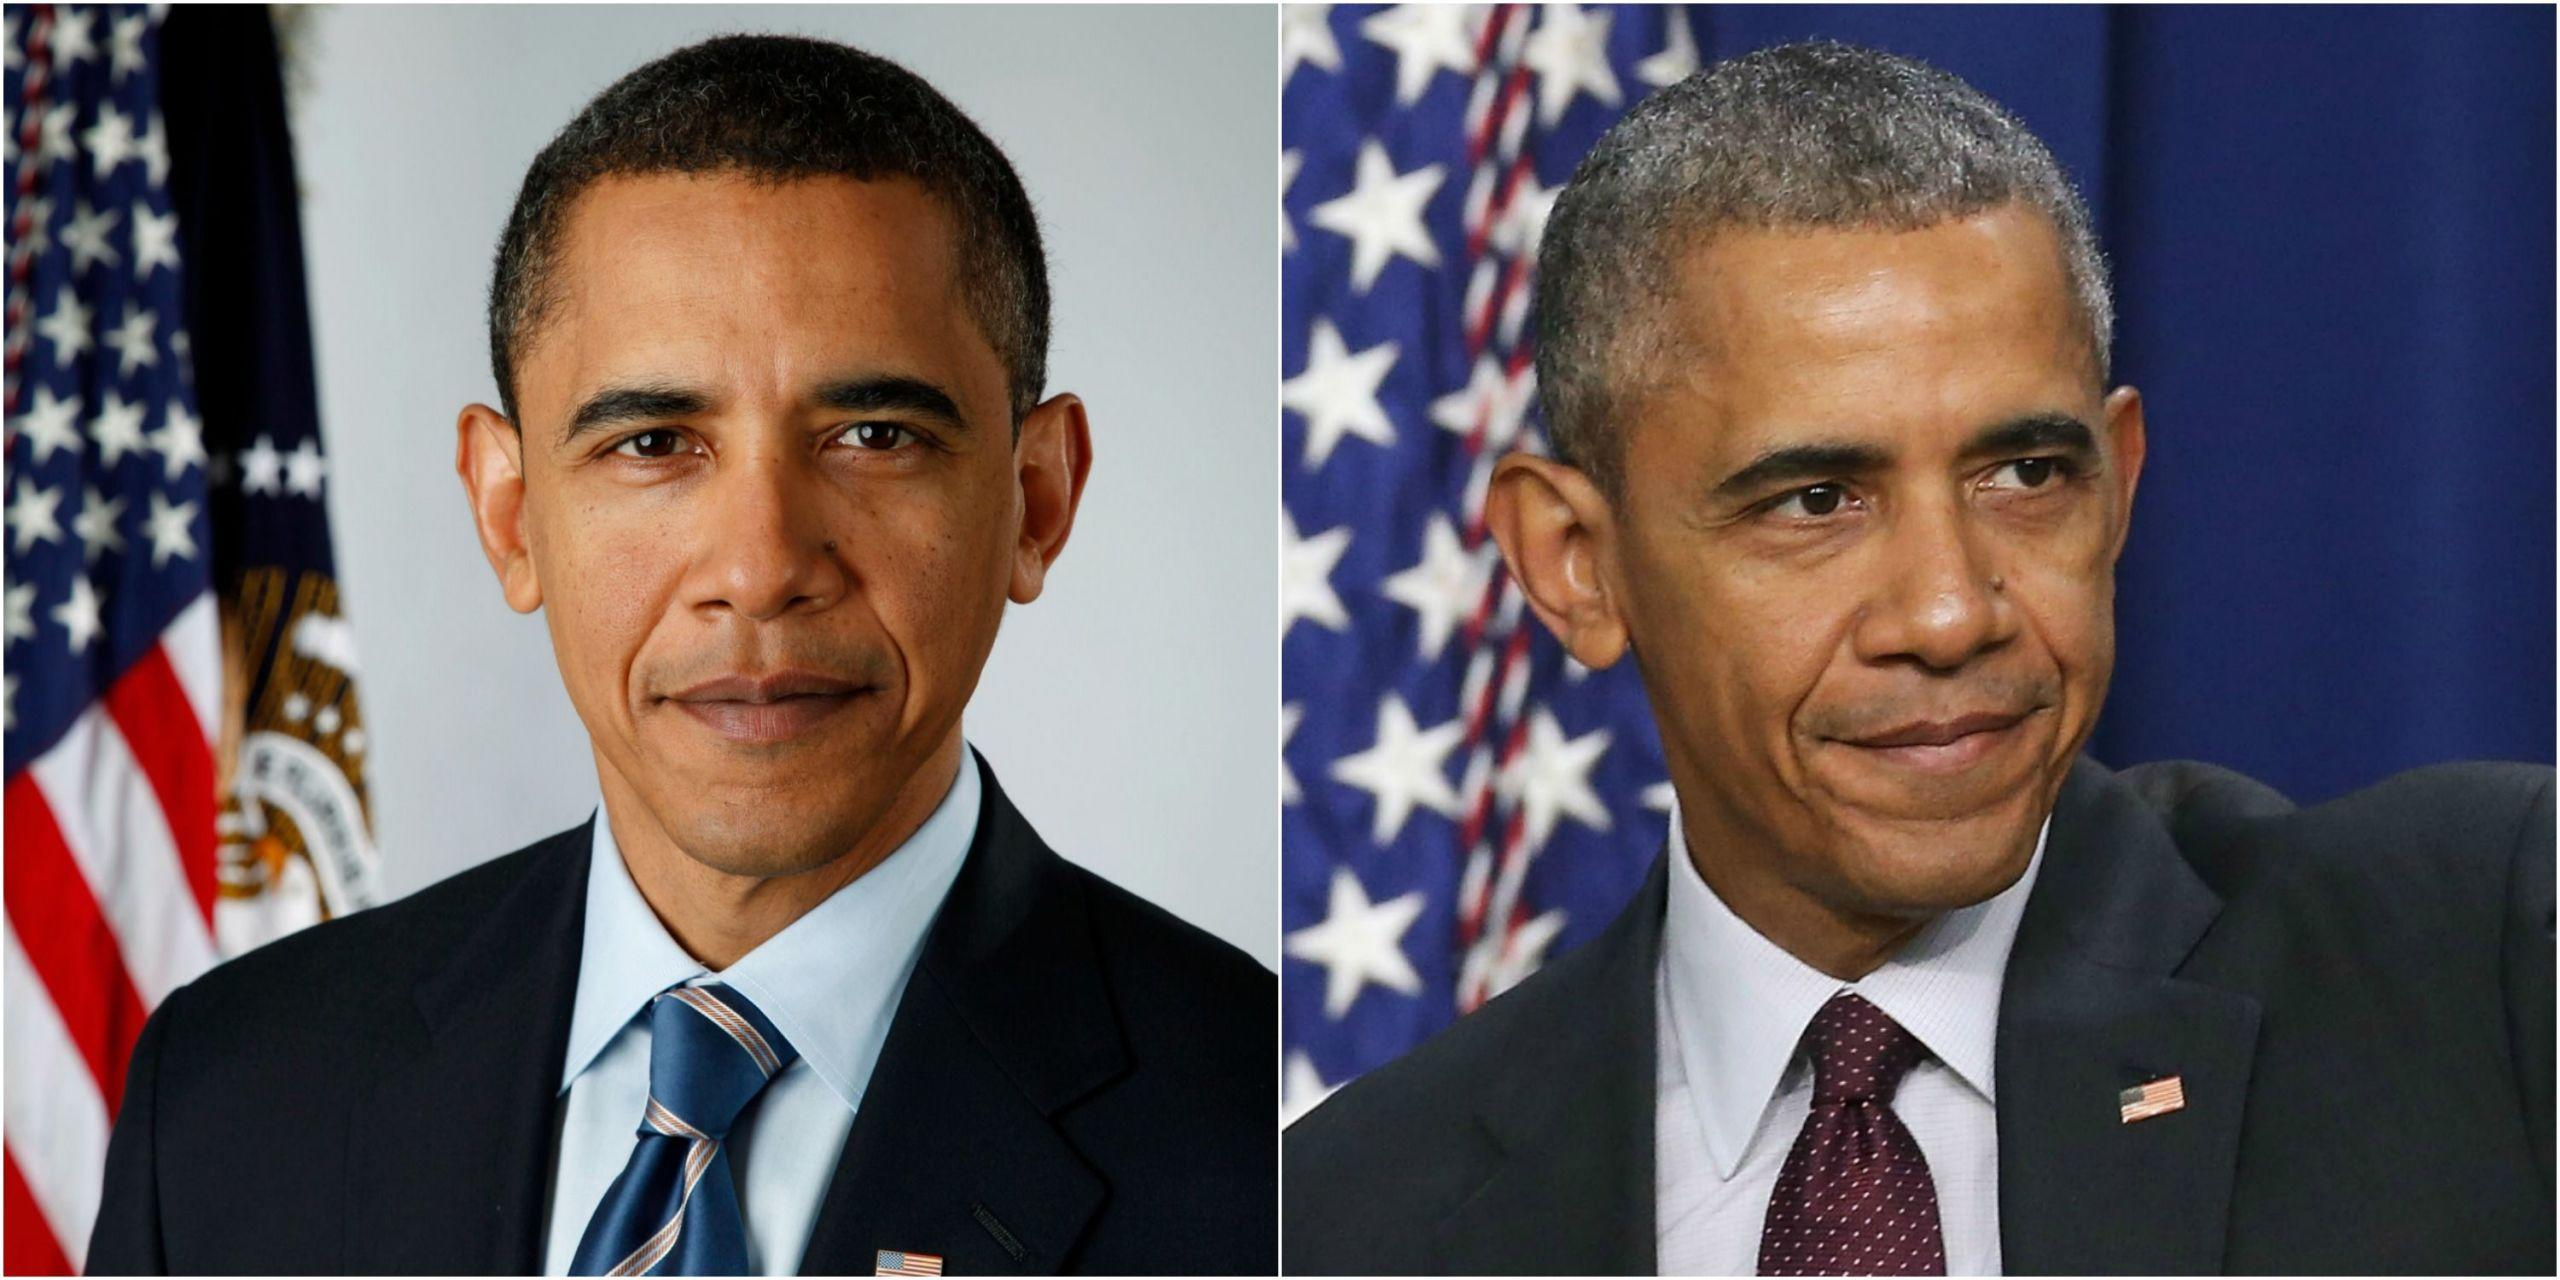 14 Photos of U.S. Presidents Before and After the White House